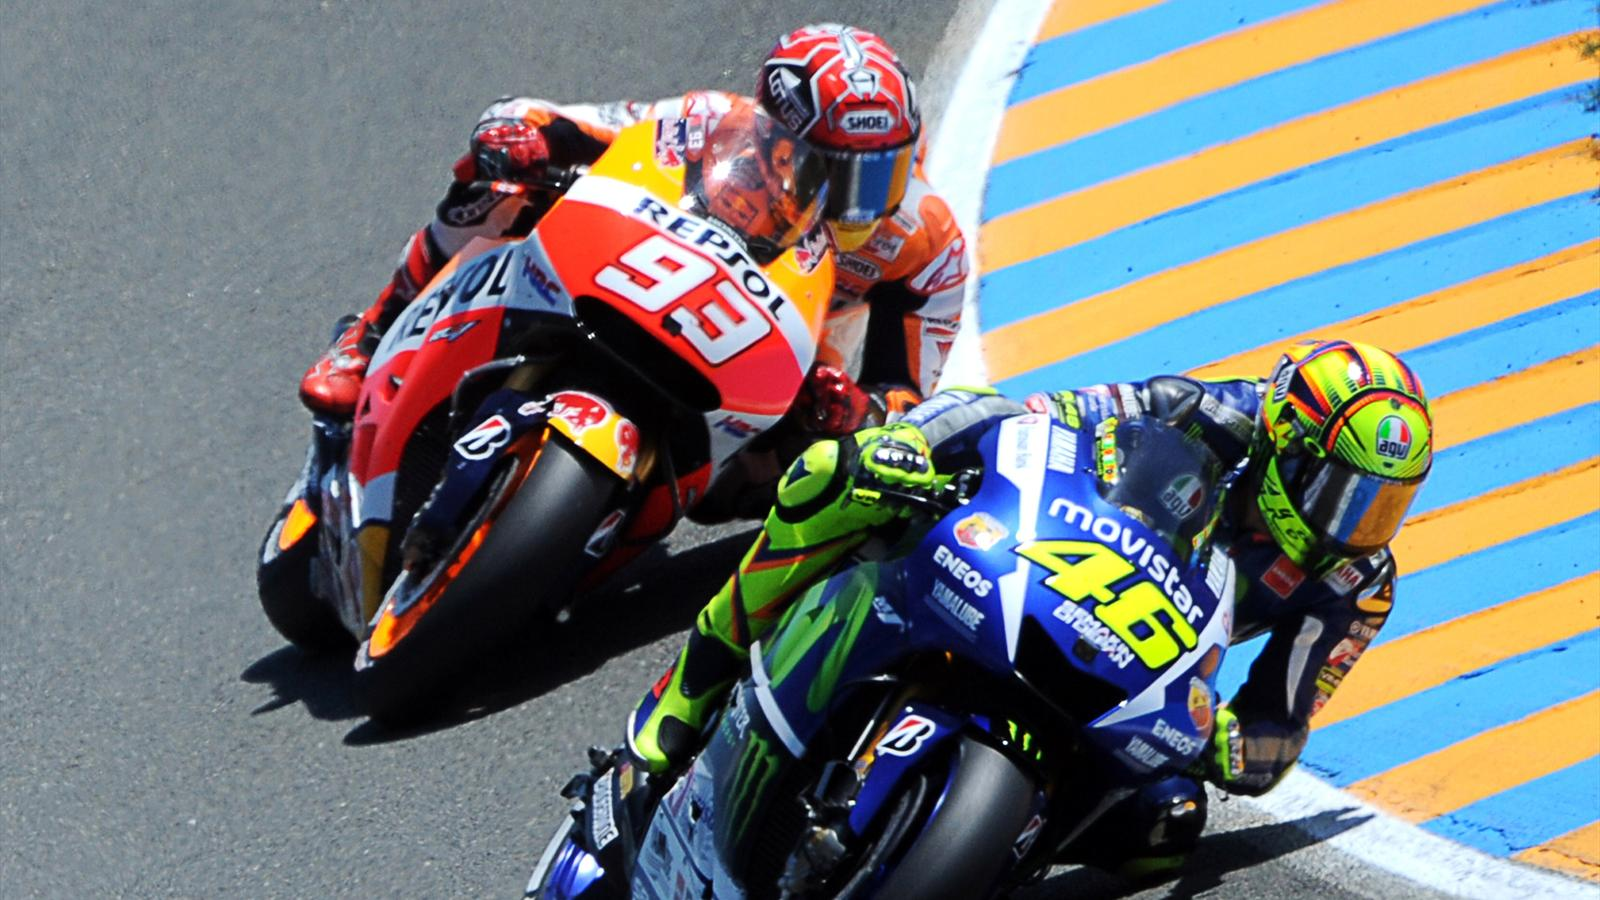 moto gp peut on aimer la fois valentino rossi yamaha factory et marc marquez honda hrc. Black Bedroom Furniture Sets. Home Design Ideas